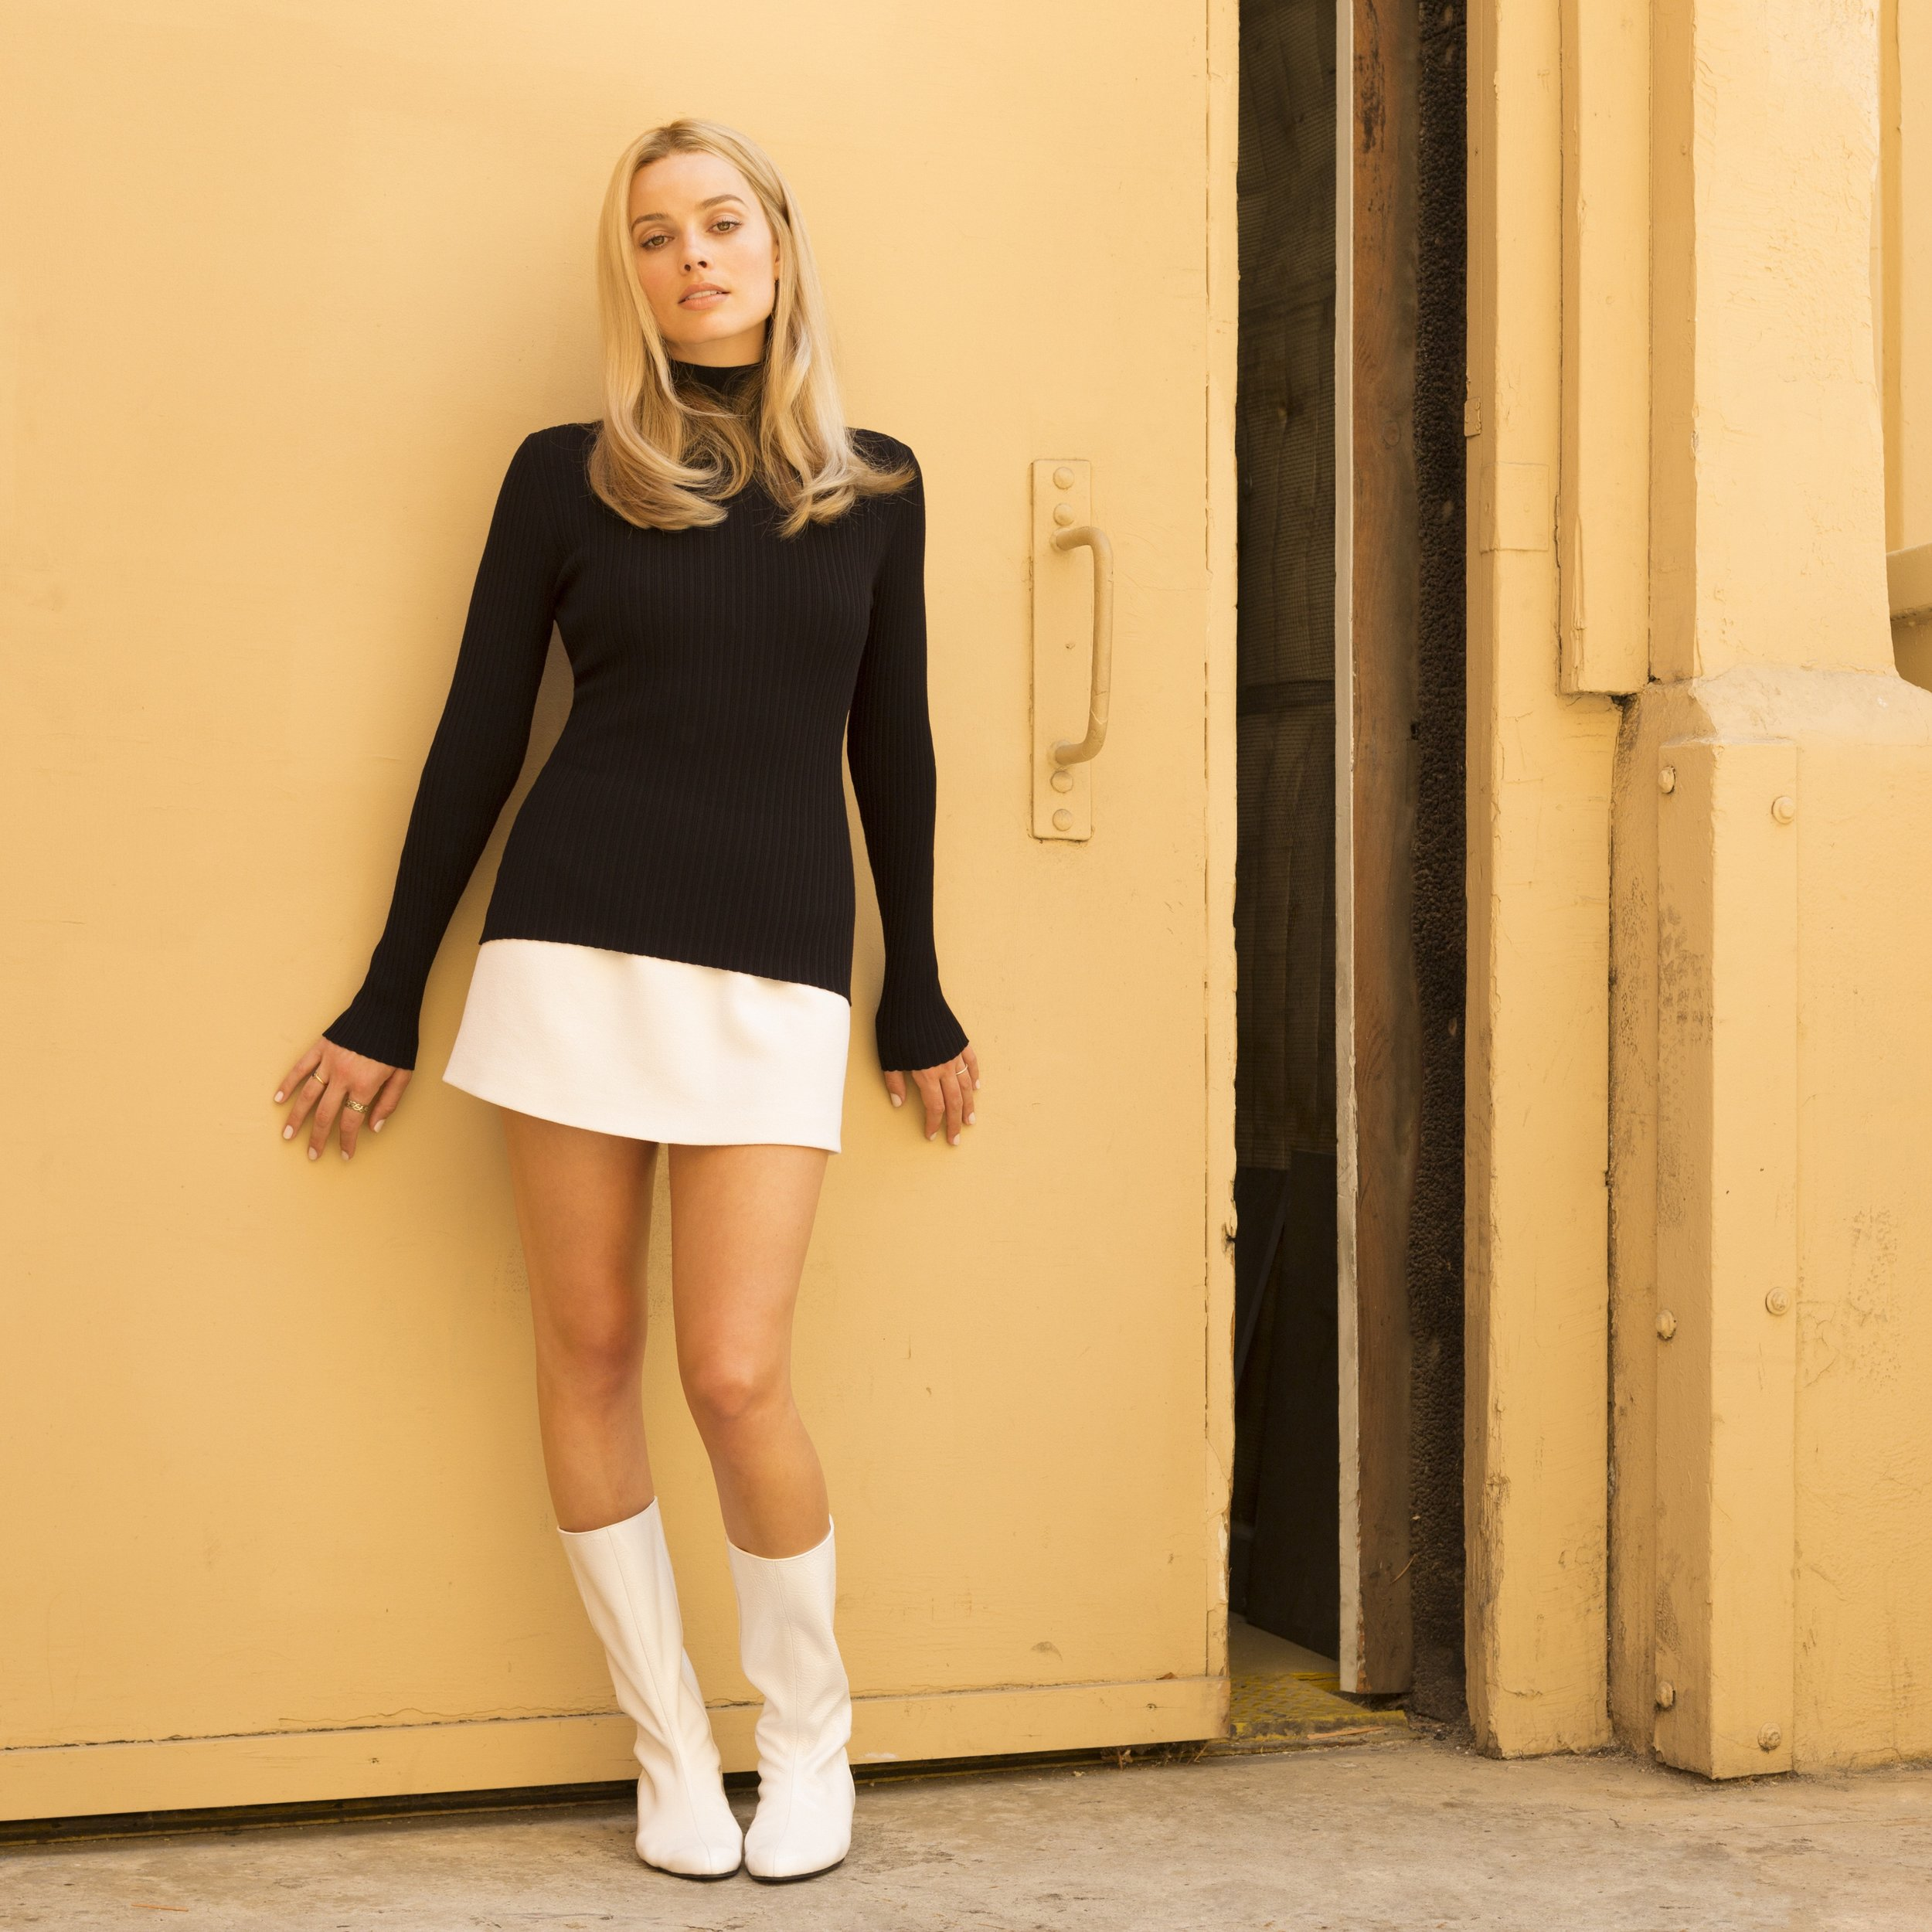 Margot Robbie plays Sharon Tate in Quentin Tarantino's Once Upon A Time… In Hollywood.